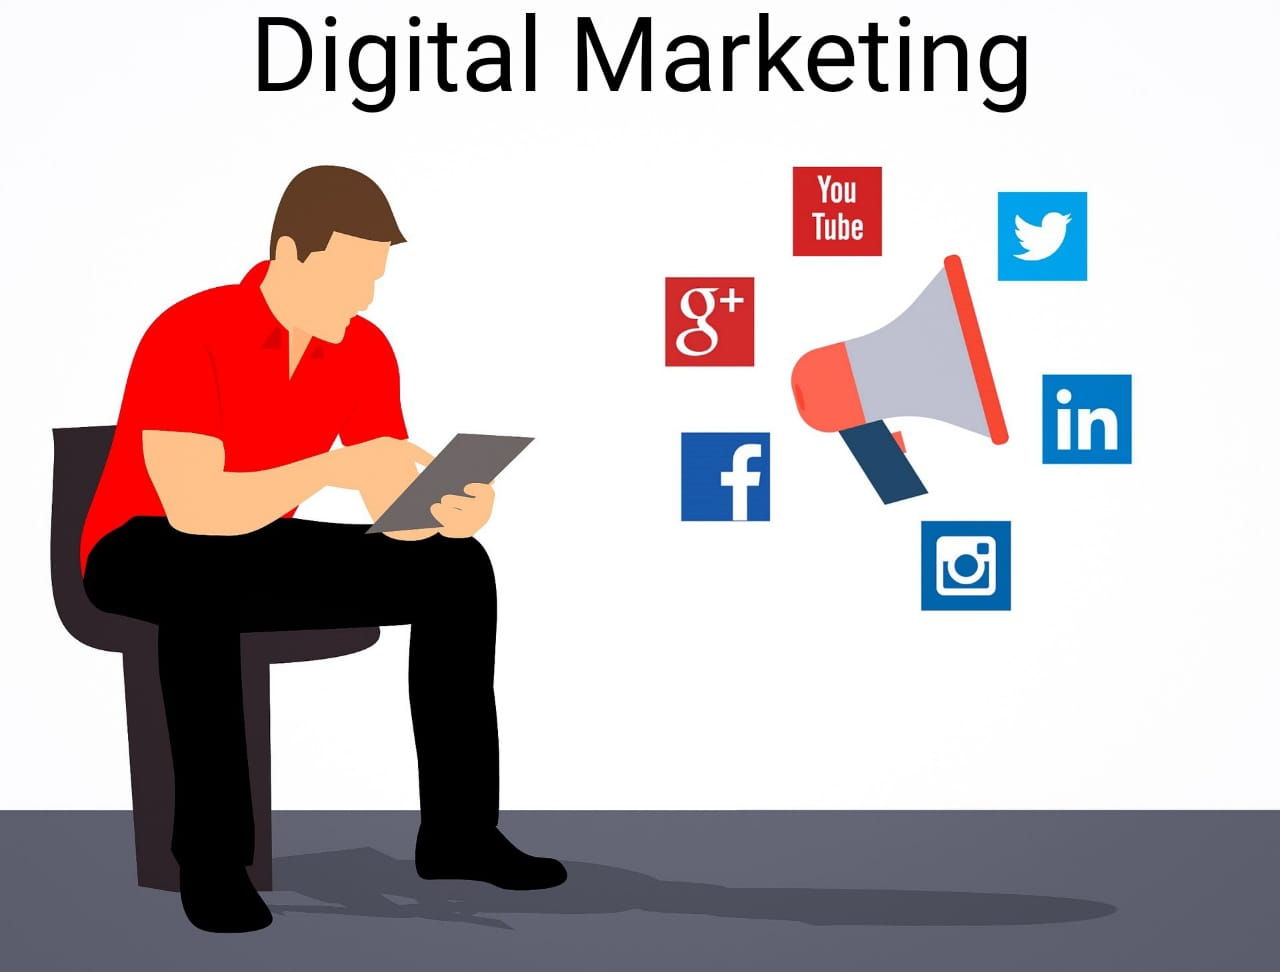 Digital Marketing as a Strategic Tool and Social Networking Opportunities